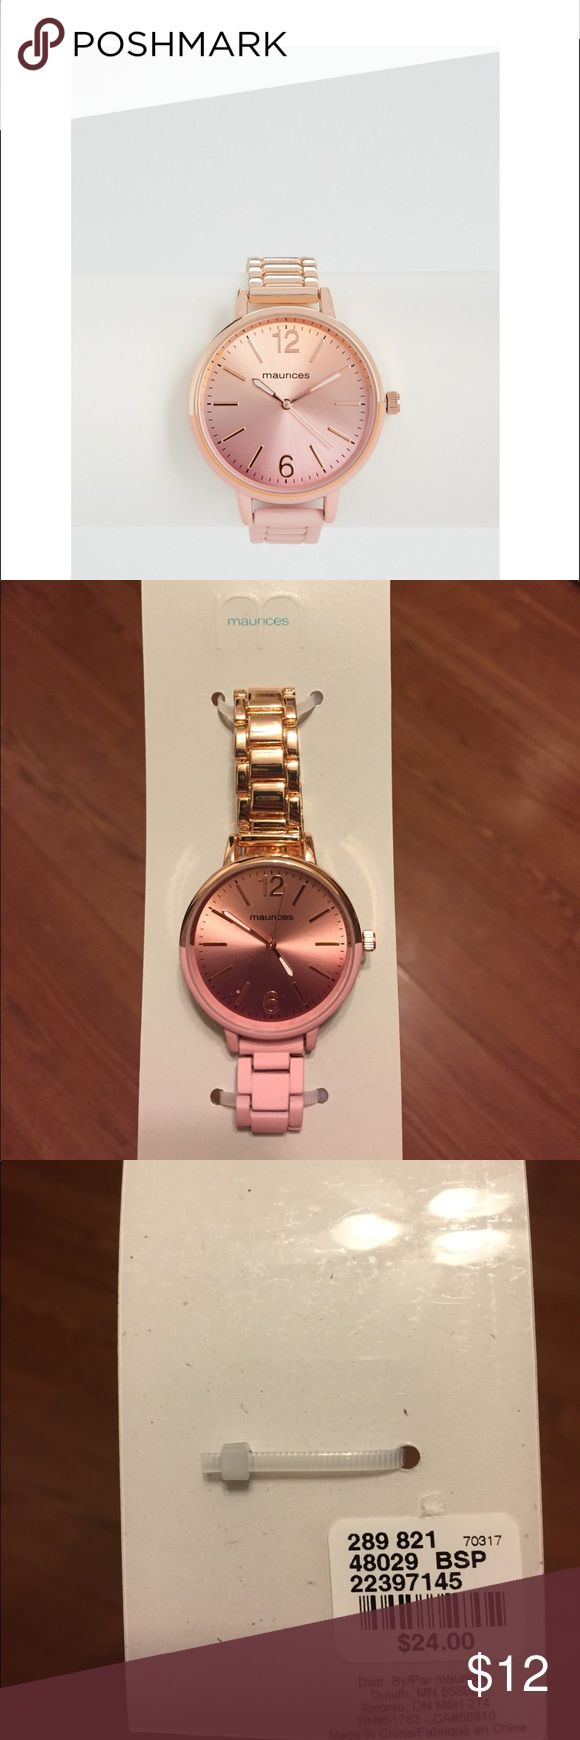 Maurices dip dyed boyfriend watch in pink Maurices dip dyed boyfriend watch in pink. New with tags. Still has plastic protection and hasn't been started. Maurices Jewelry